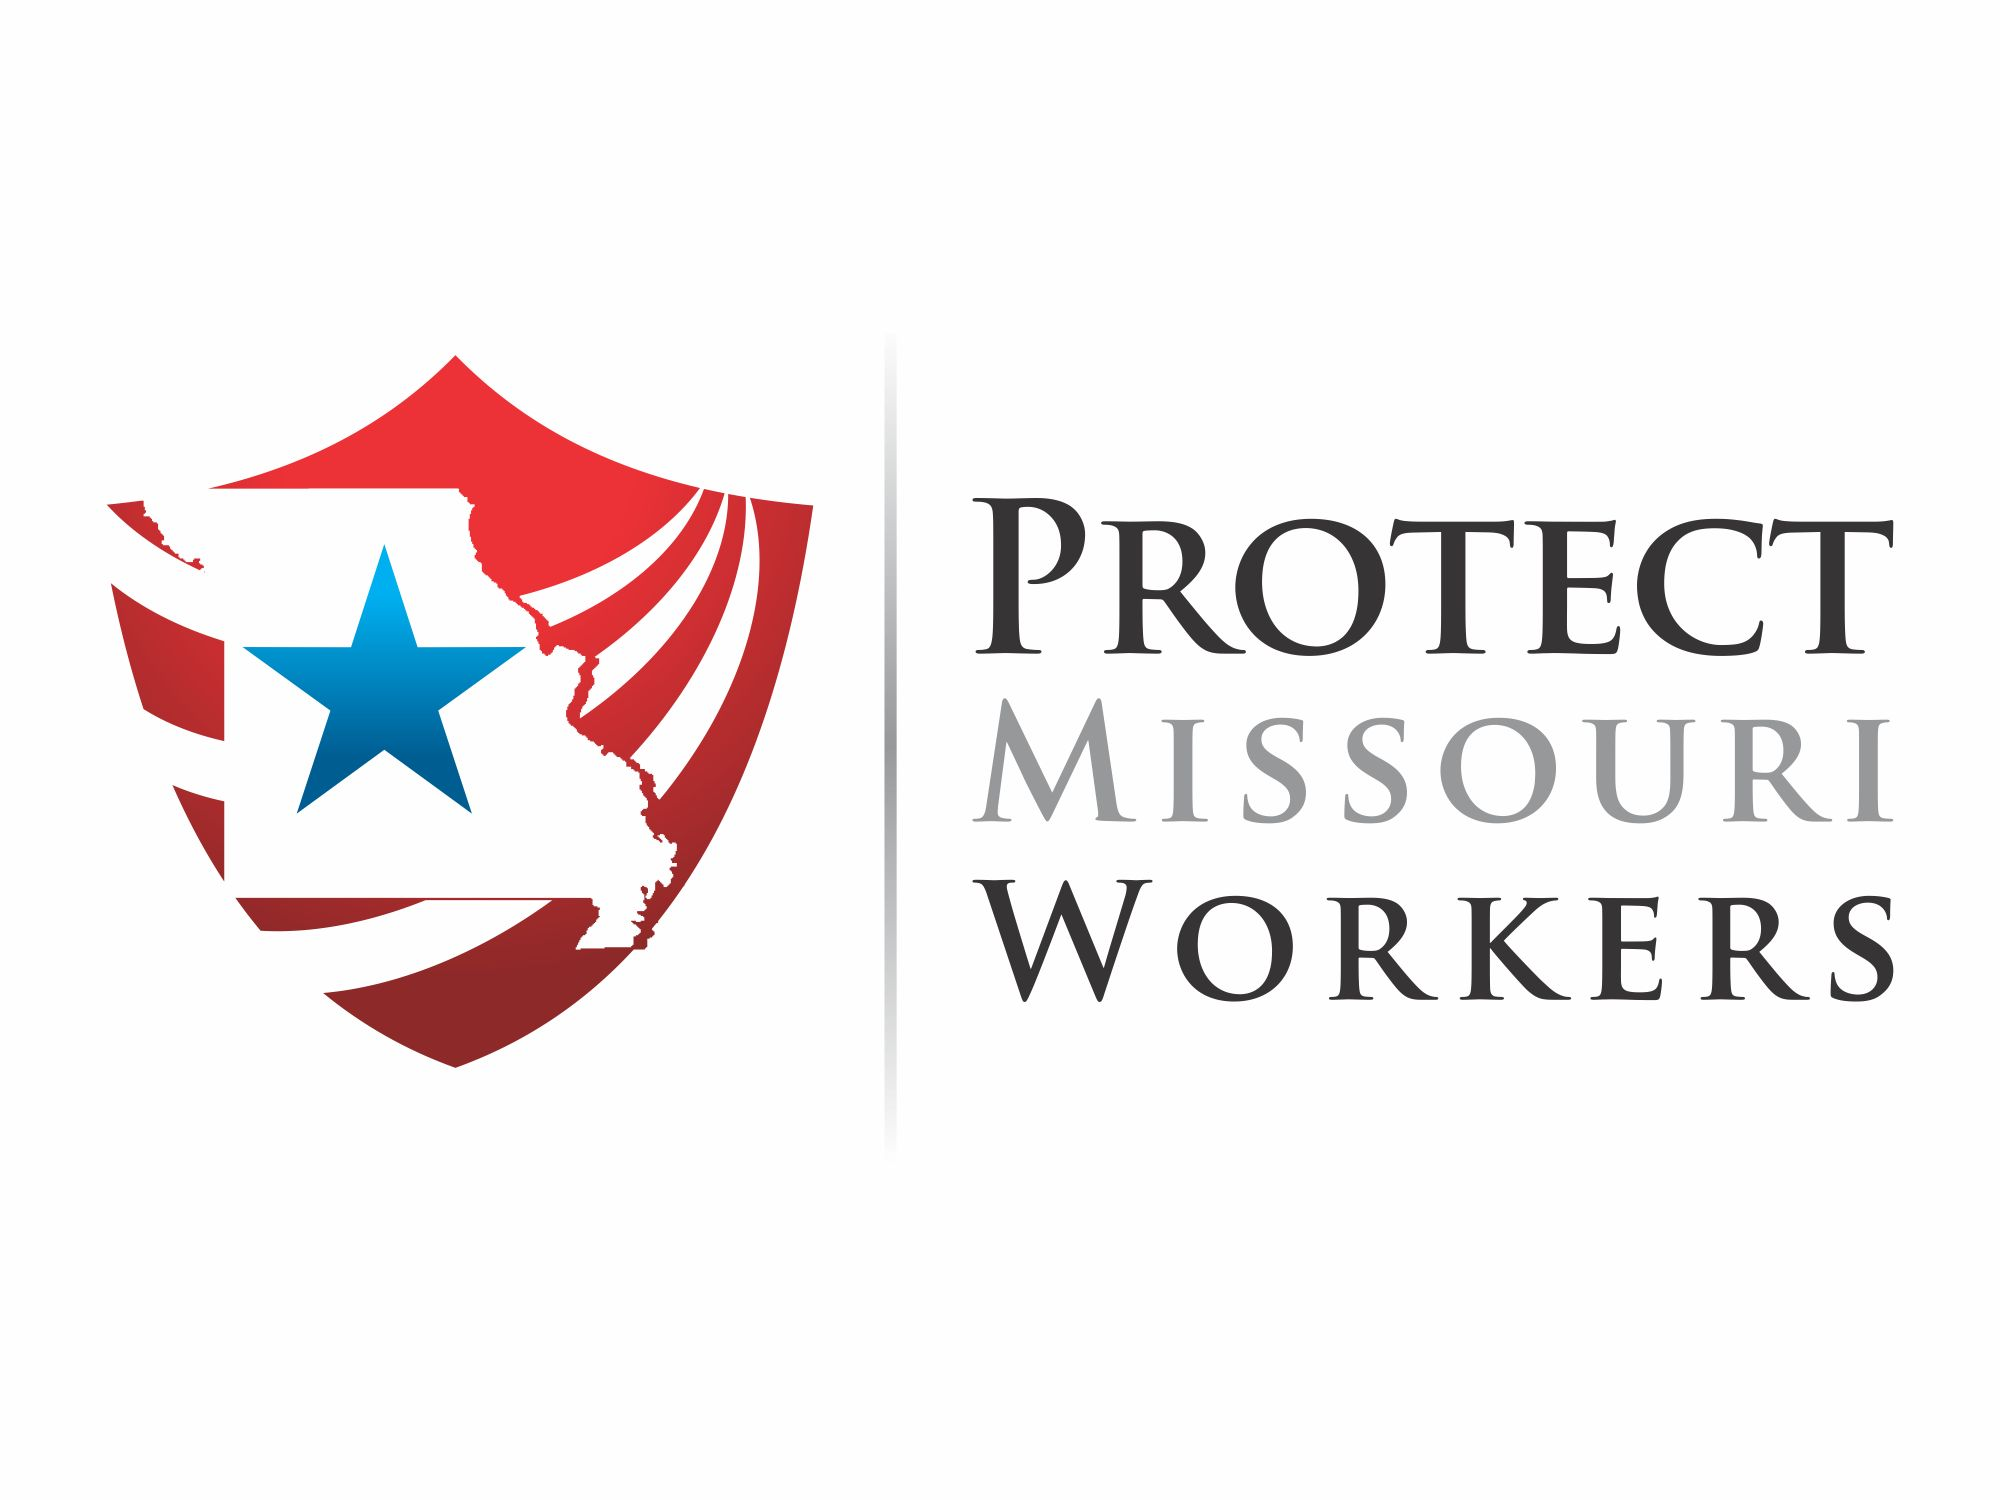 Protect Missouri Workers